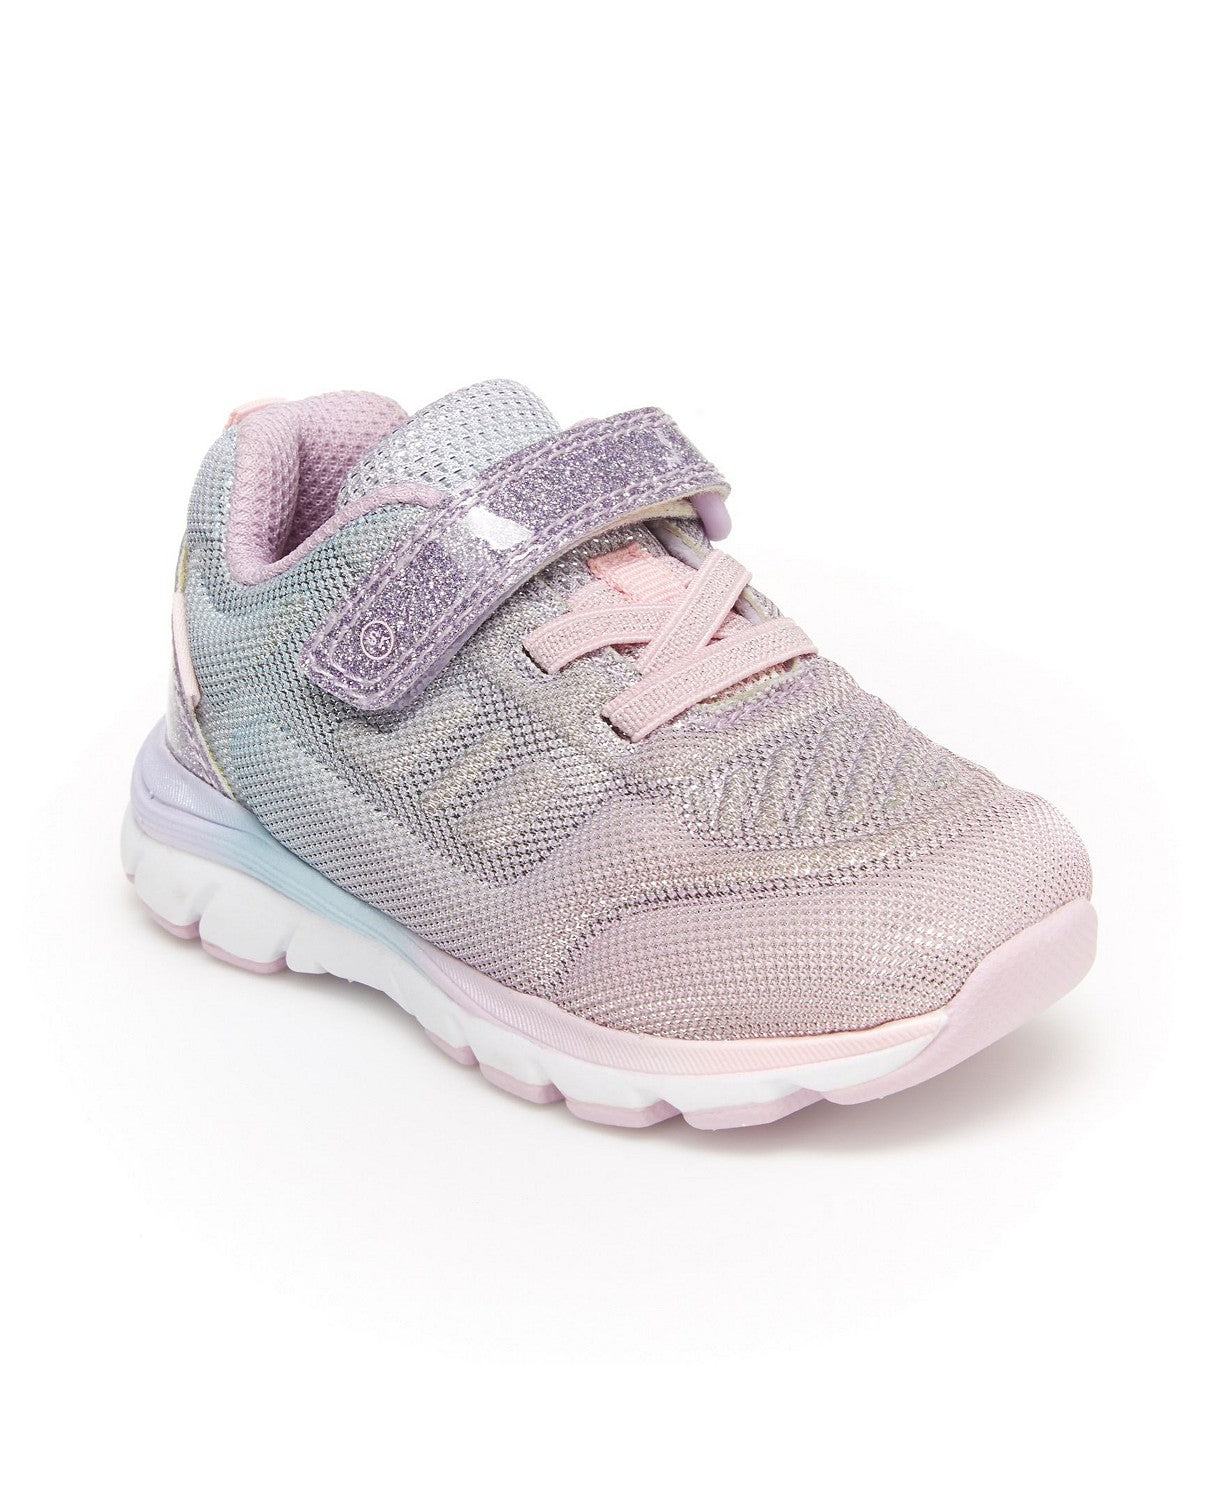 Stride Rite Made2Play Cora Sneaker - Pastel Multi